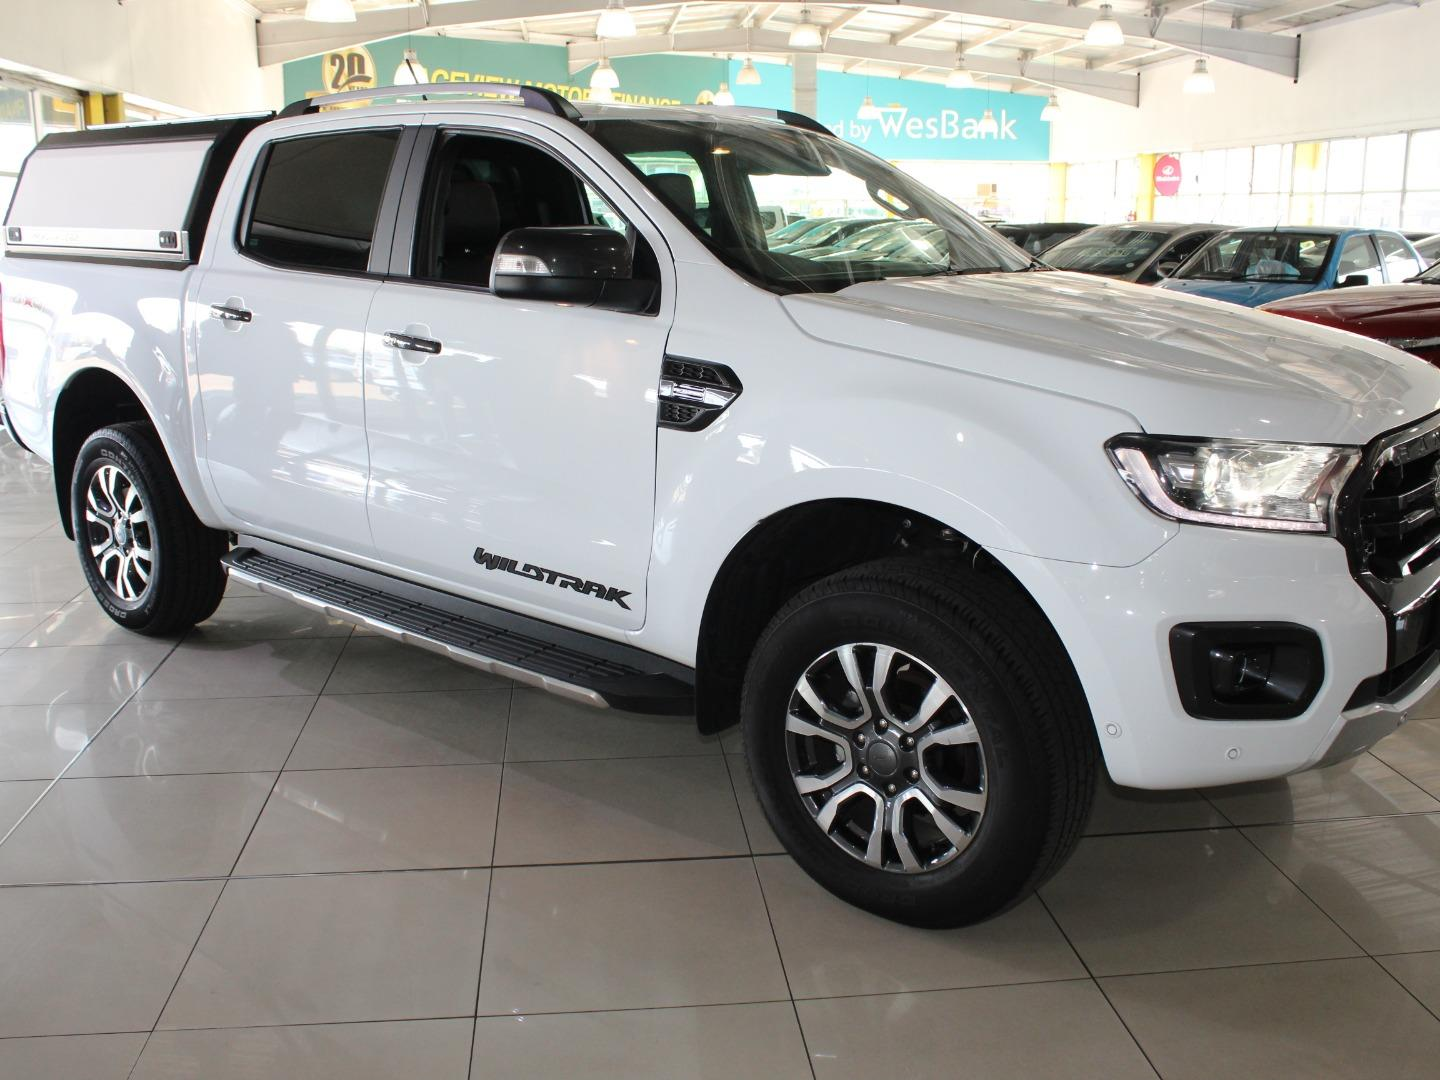 2019 Ford Ranger 2.0Bi-Turbo Double Cab 4x4 Wildtrak- Picture 1